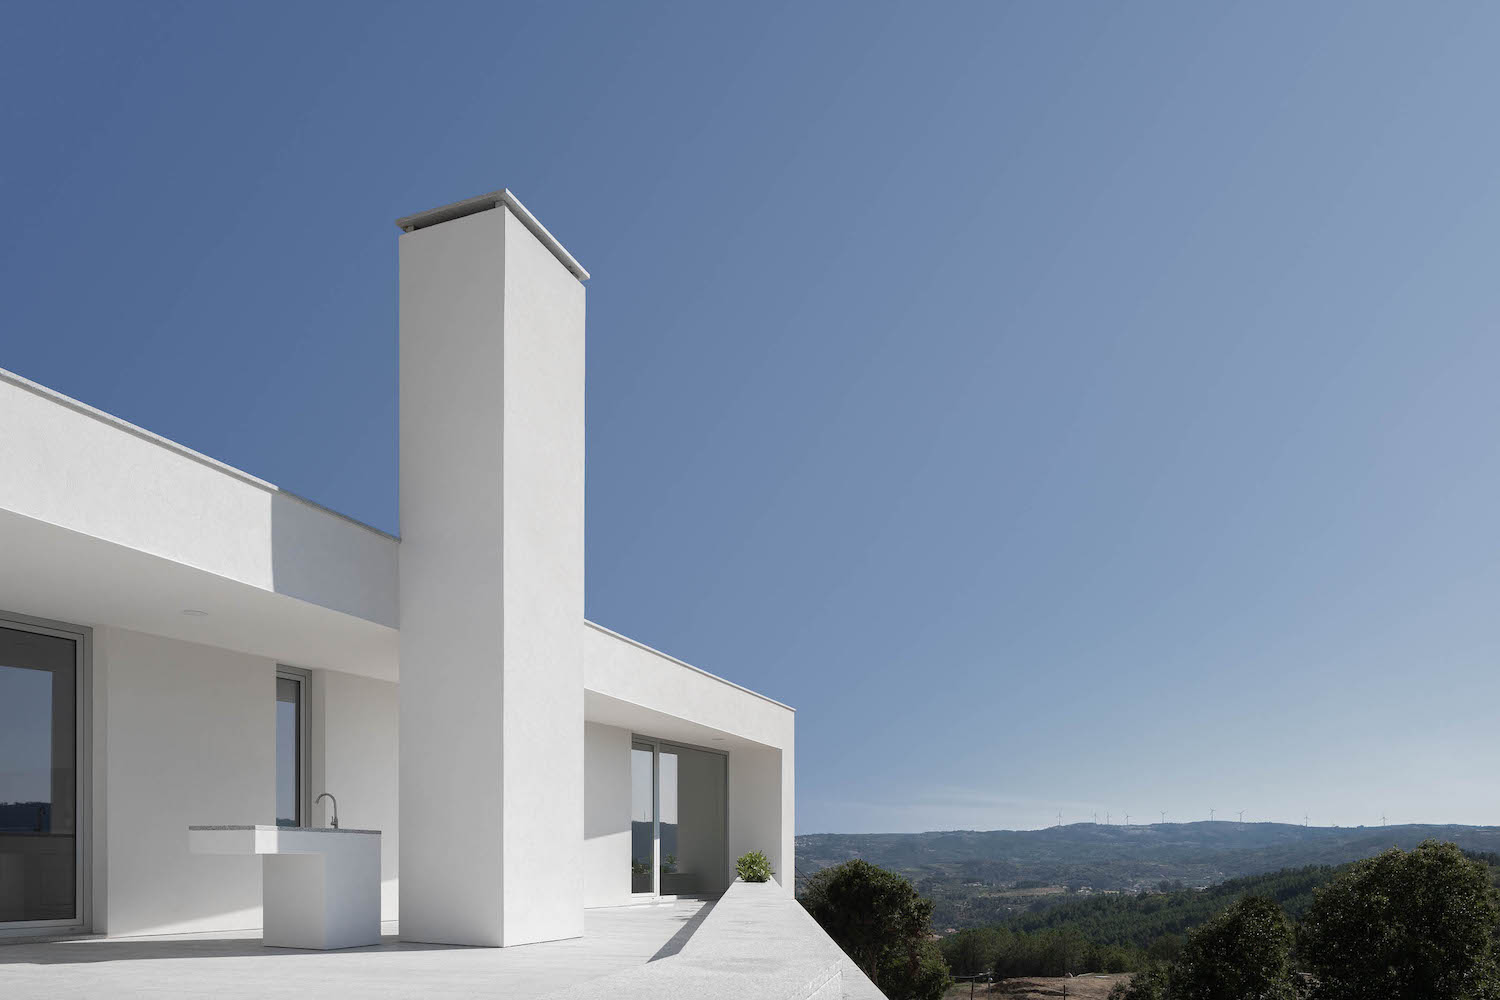 house with white stucco